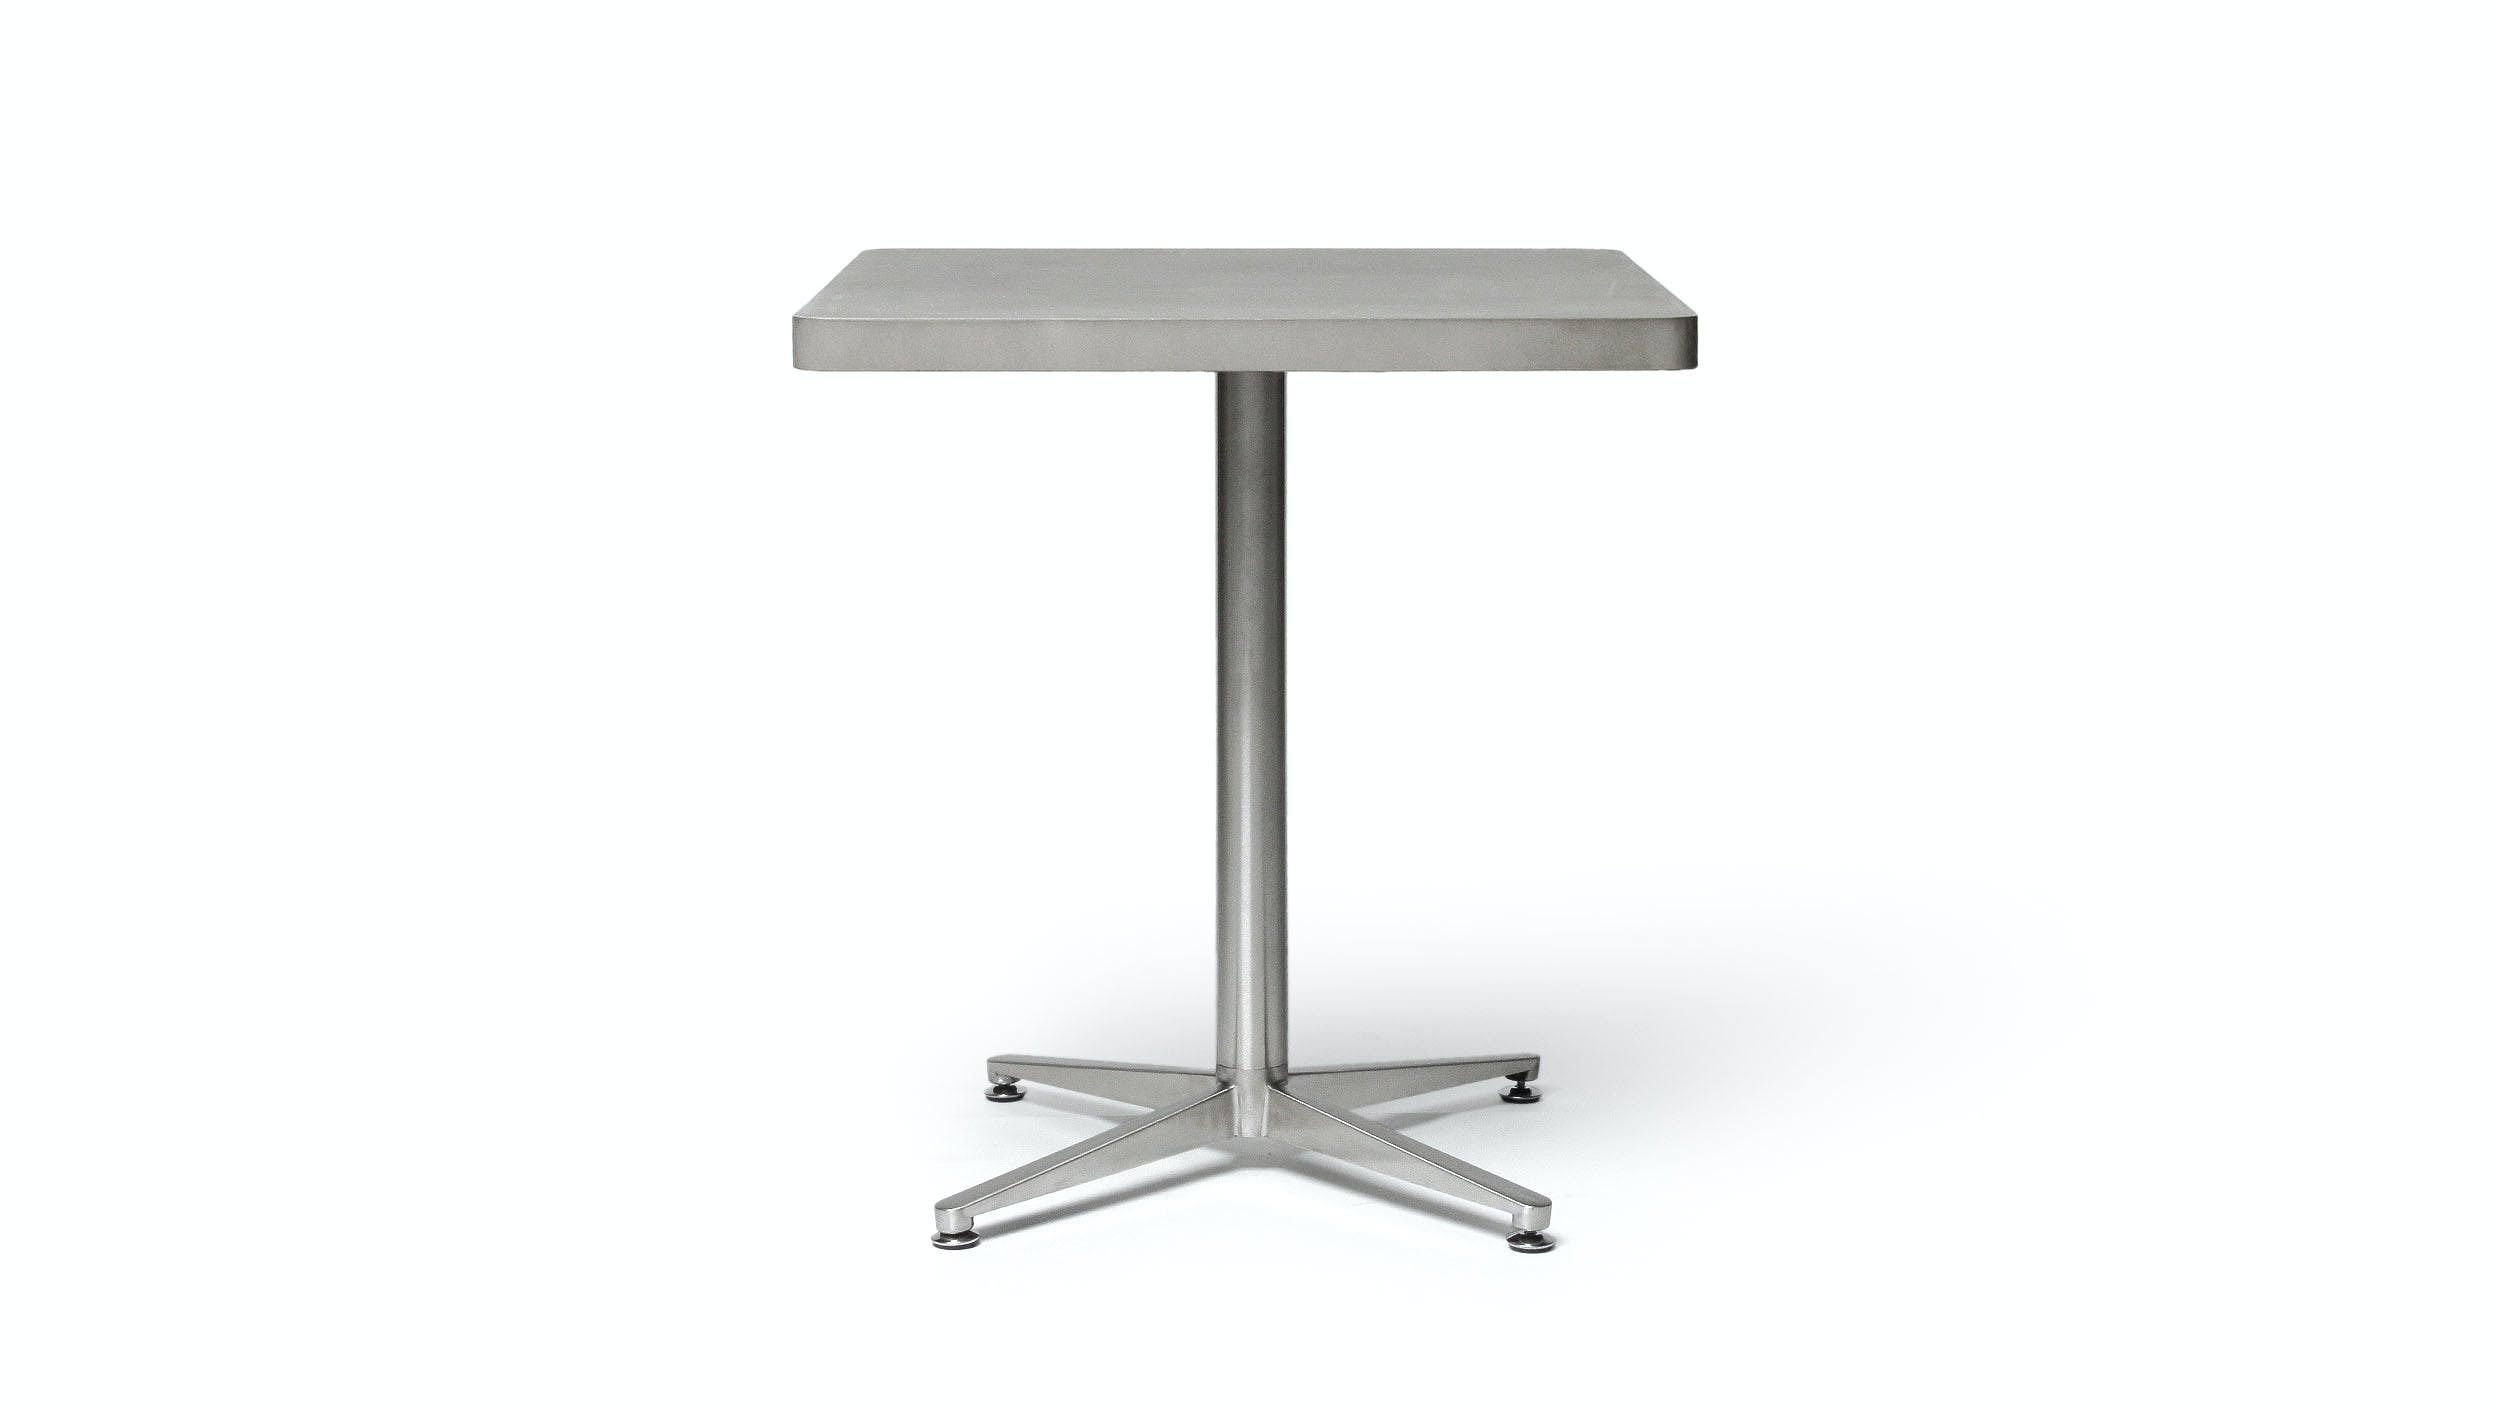 Dl 09070 Sl 131 1 Bistro Square Dining Table 00001